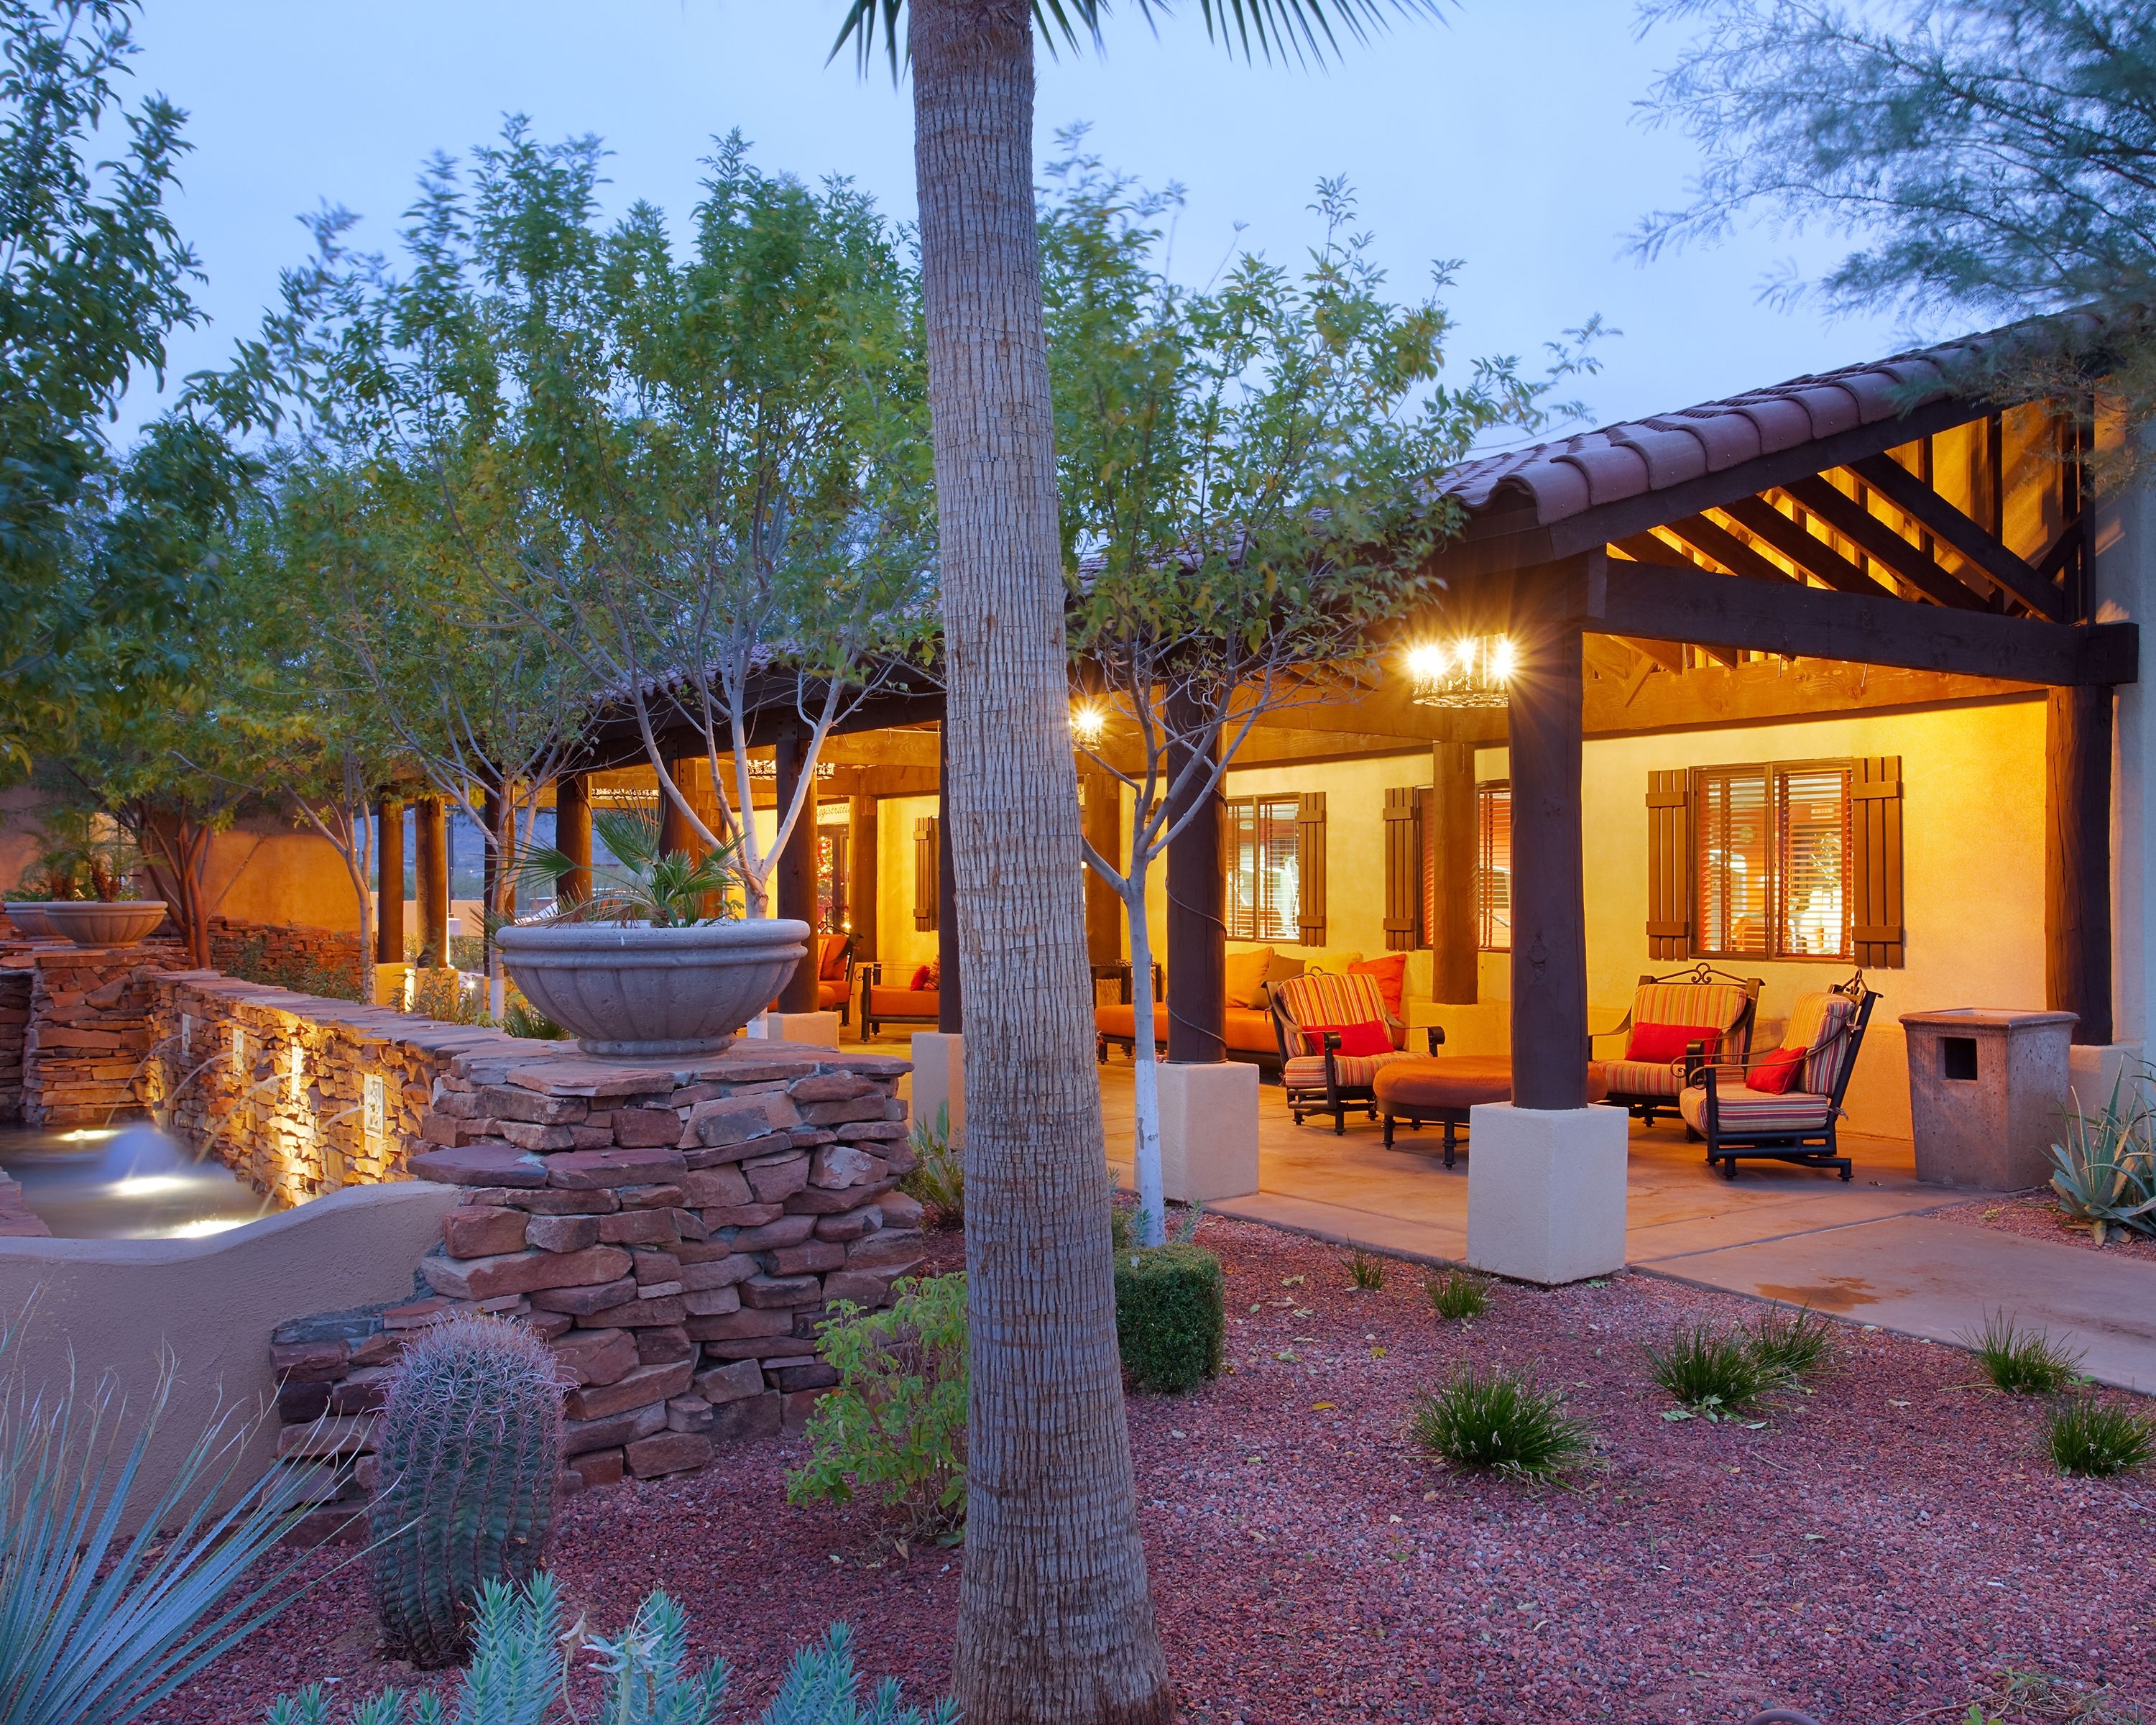 Enjoy the Arizona sunset on the stunning grounds of